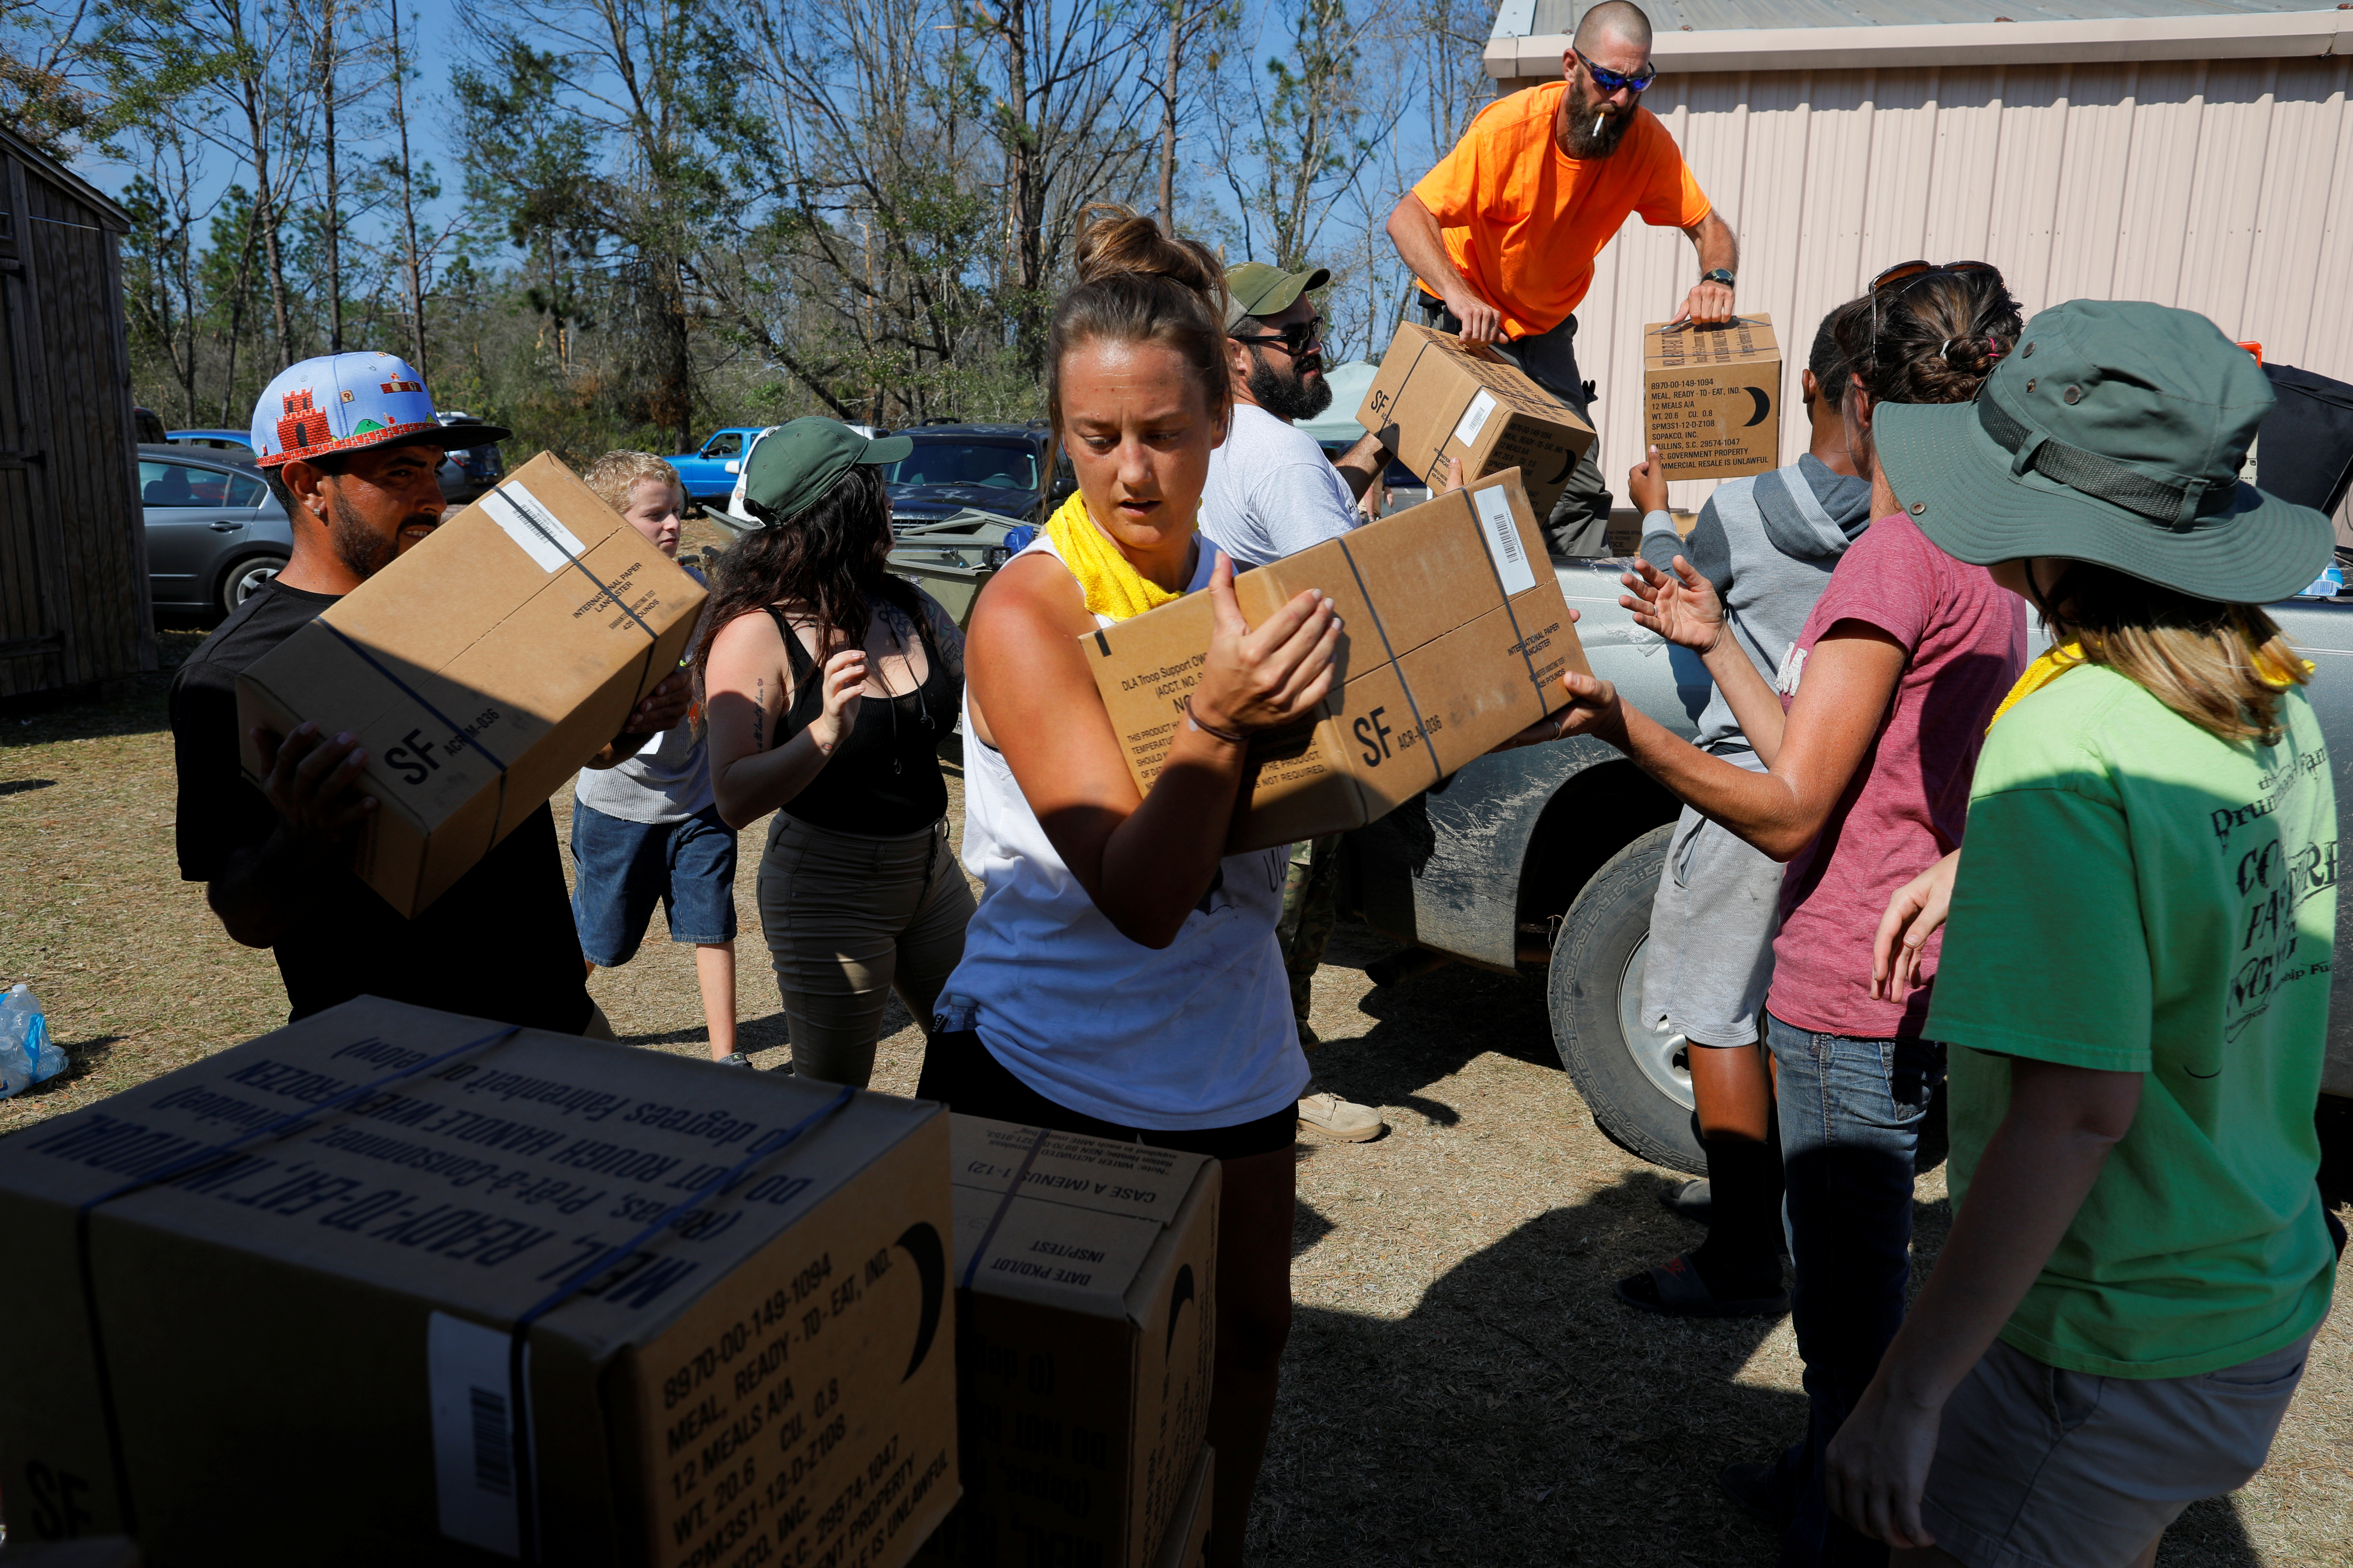 50 Star Search and Rescue team members and volunteers unload a pallet of MREs (Meal, Ready-to-Eat) at a relief center at Fountain's Victory Tabernacle church in Fountain, Florida, U.S., October 18, 2018. REUTERS/Brian Snyder